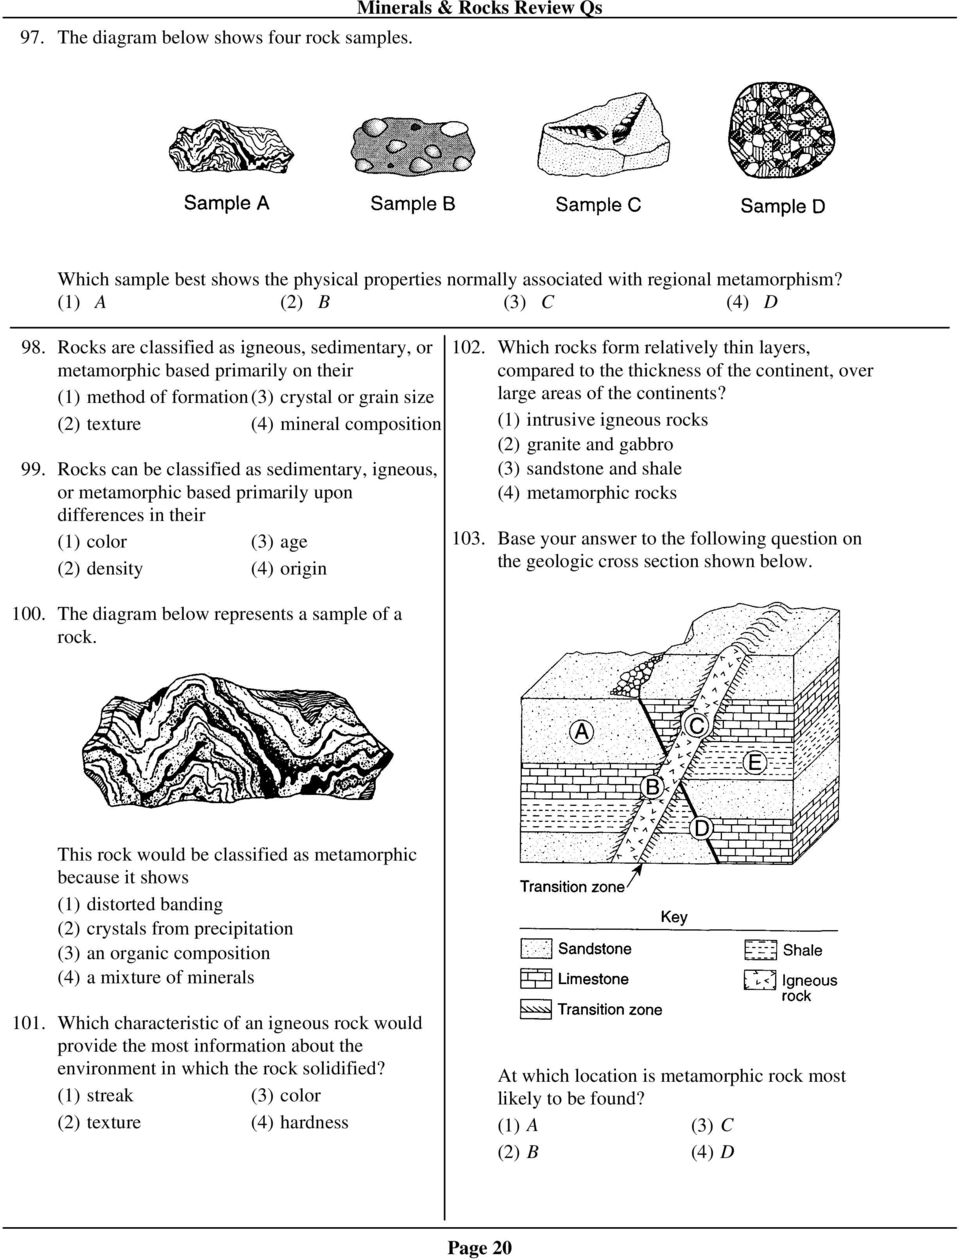 Minerals rocks review qs pdf rocks can be classified as sedimentary igneous or metamorphic based primarily upon differences in pooptronica Choice Image